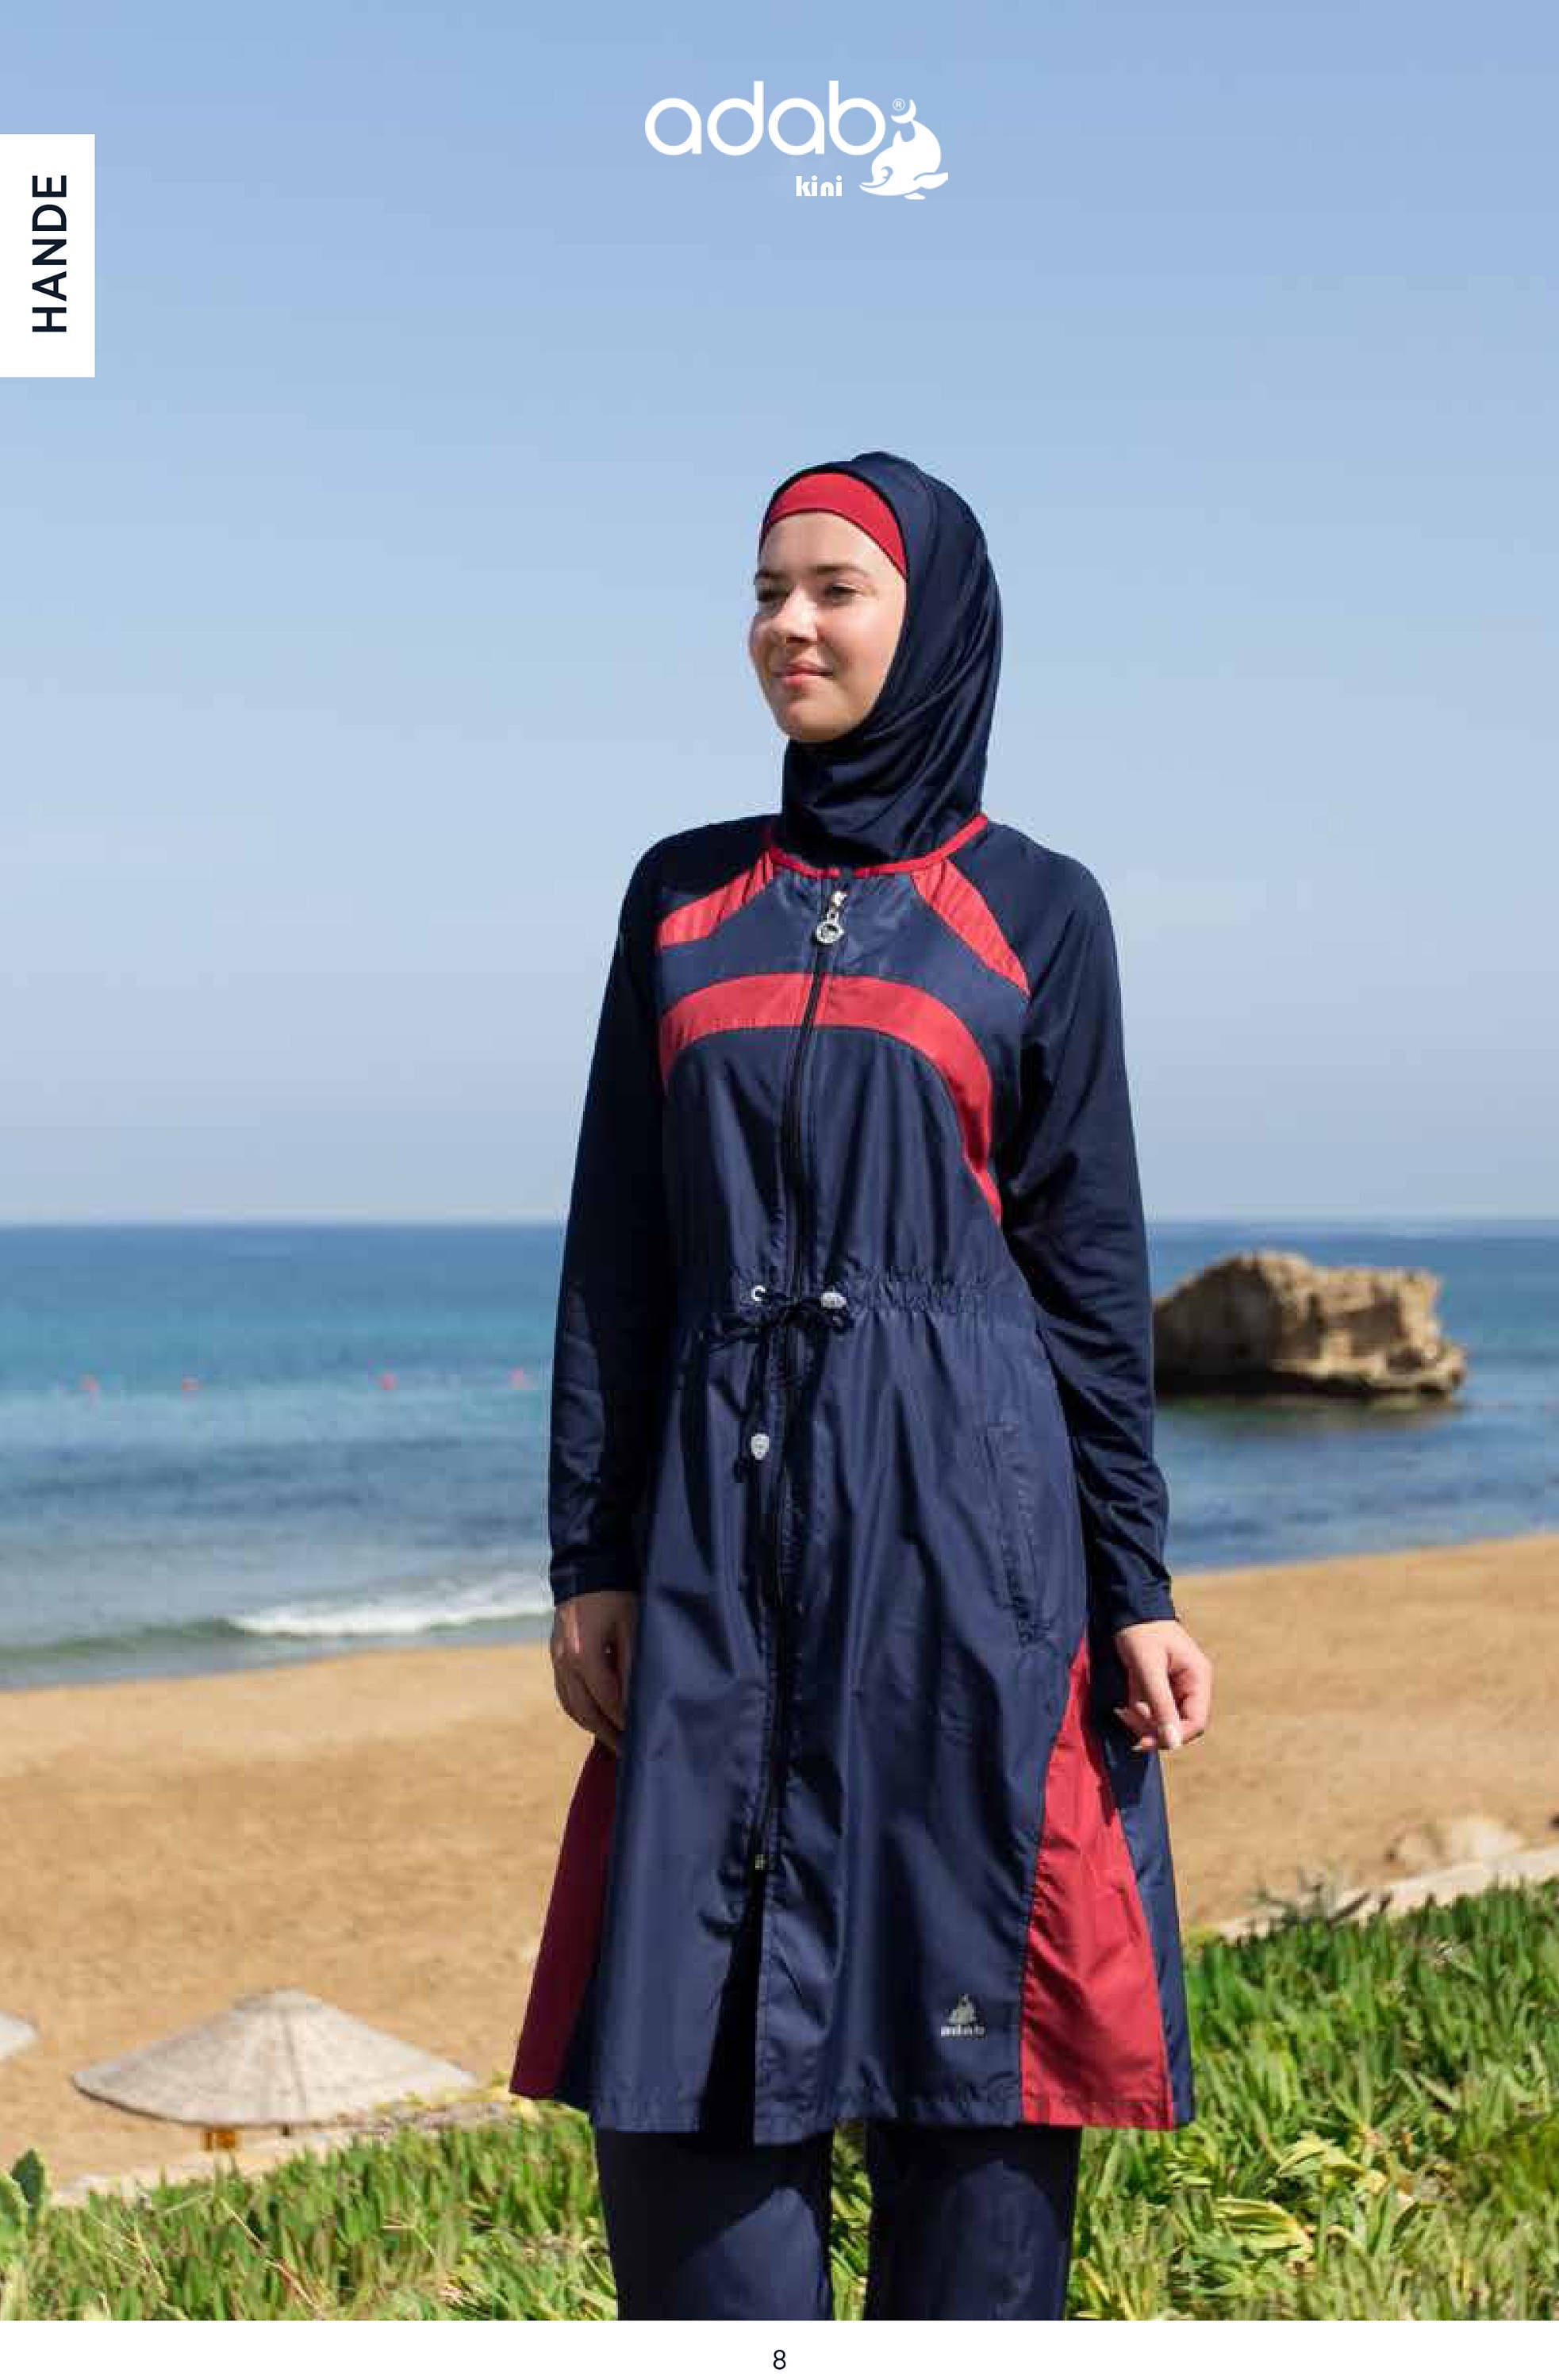 d9e78aaf76 Small - Adabkini HANDE, Womens modest swimsuit, bathing suit, Full covered  with head cover, burqini